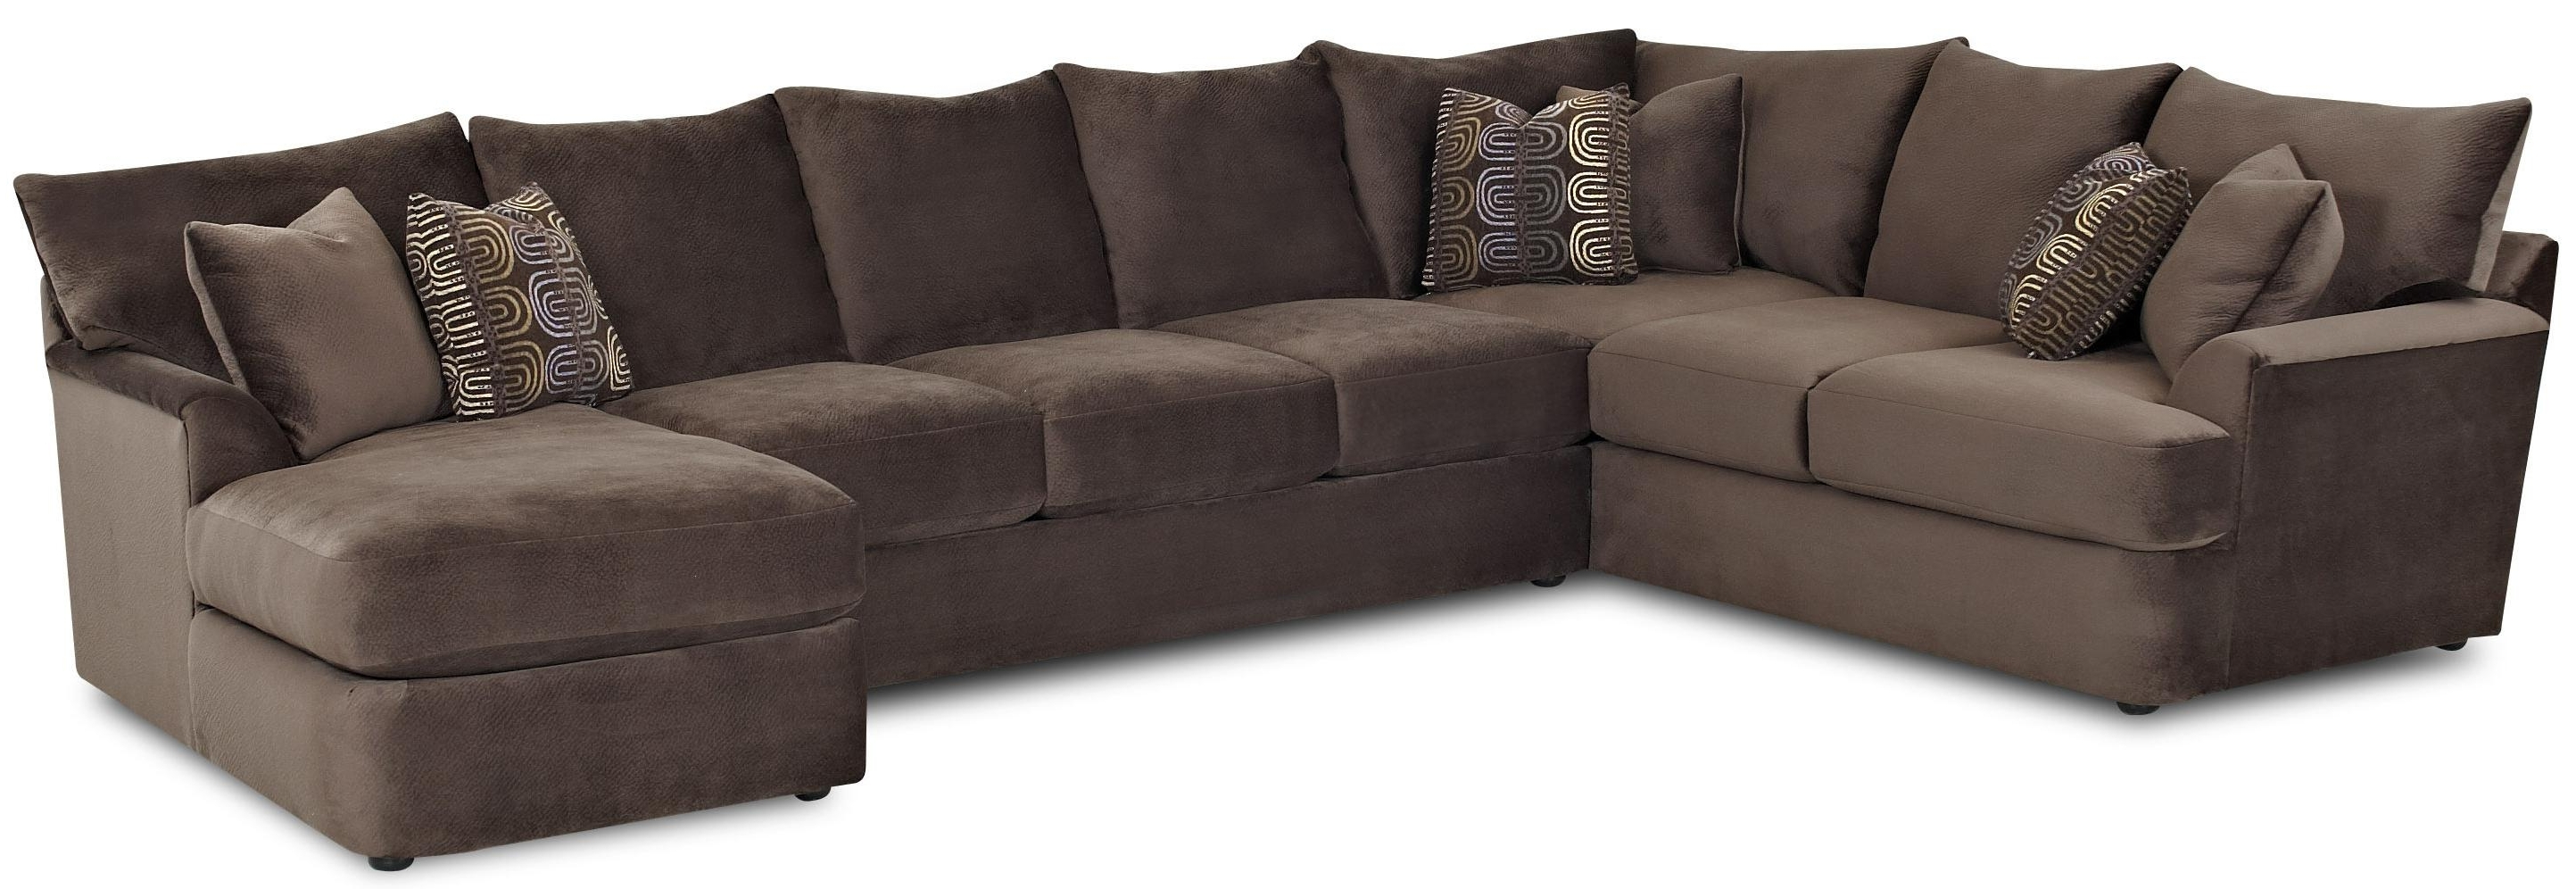 2017 Sectional Sofa Design: L Shaped Sectional Sofa Chaise Covers With L Shaped Sectionals With Chaise (View 2 of 15)